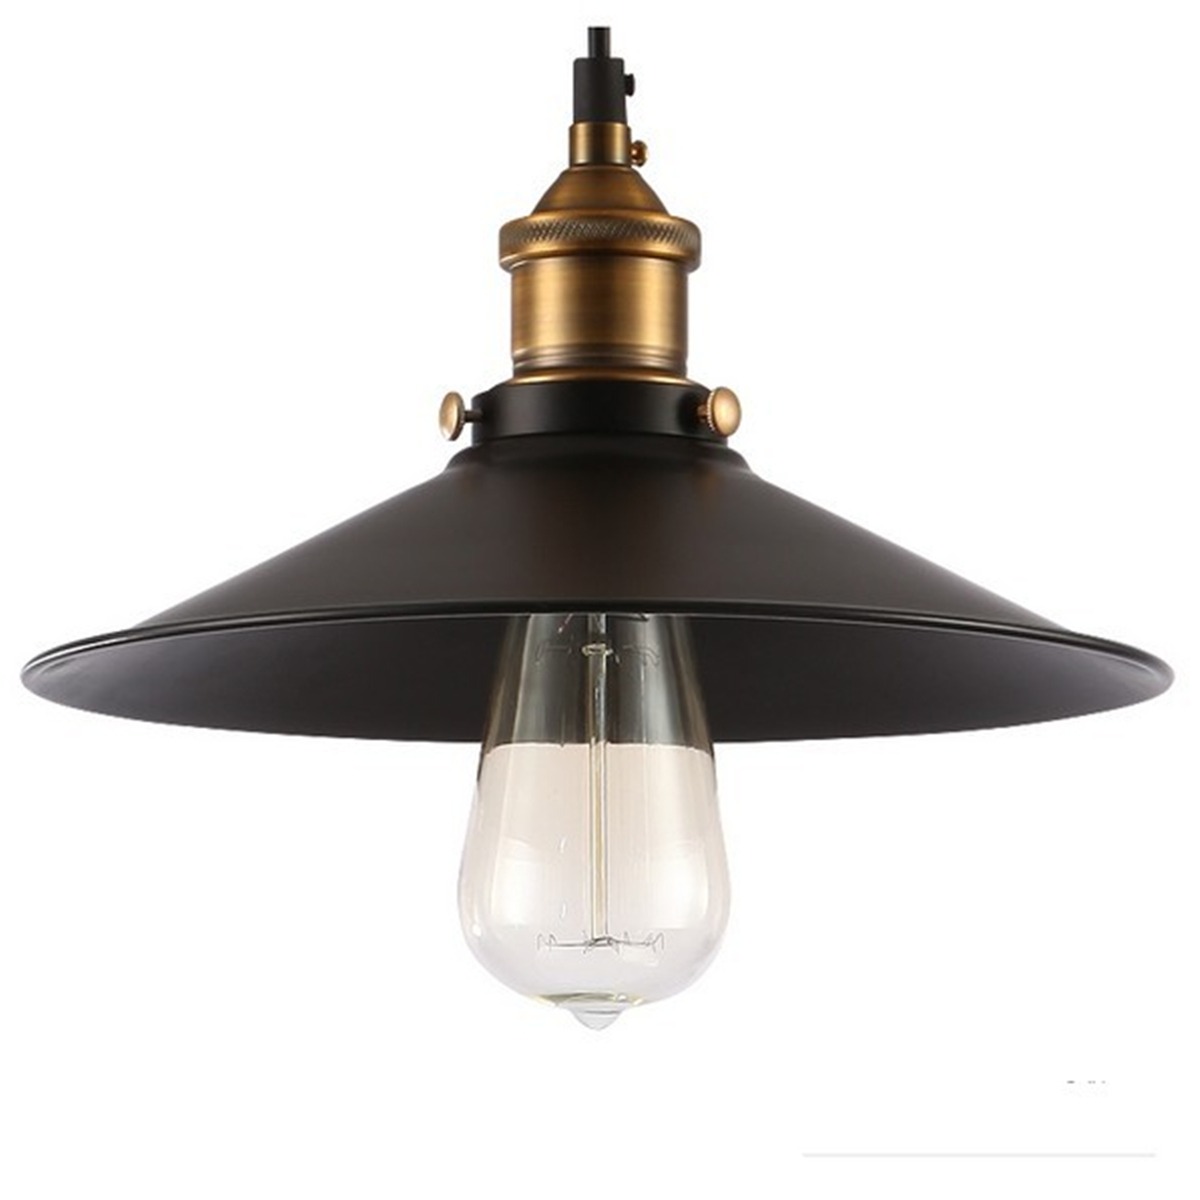 American Countryside Vintage Industrial Pendant Lights Home Restaurant Bar Table Lamp american countryside industrial vintage